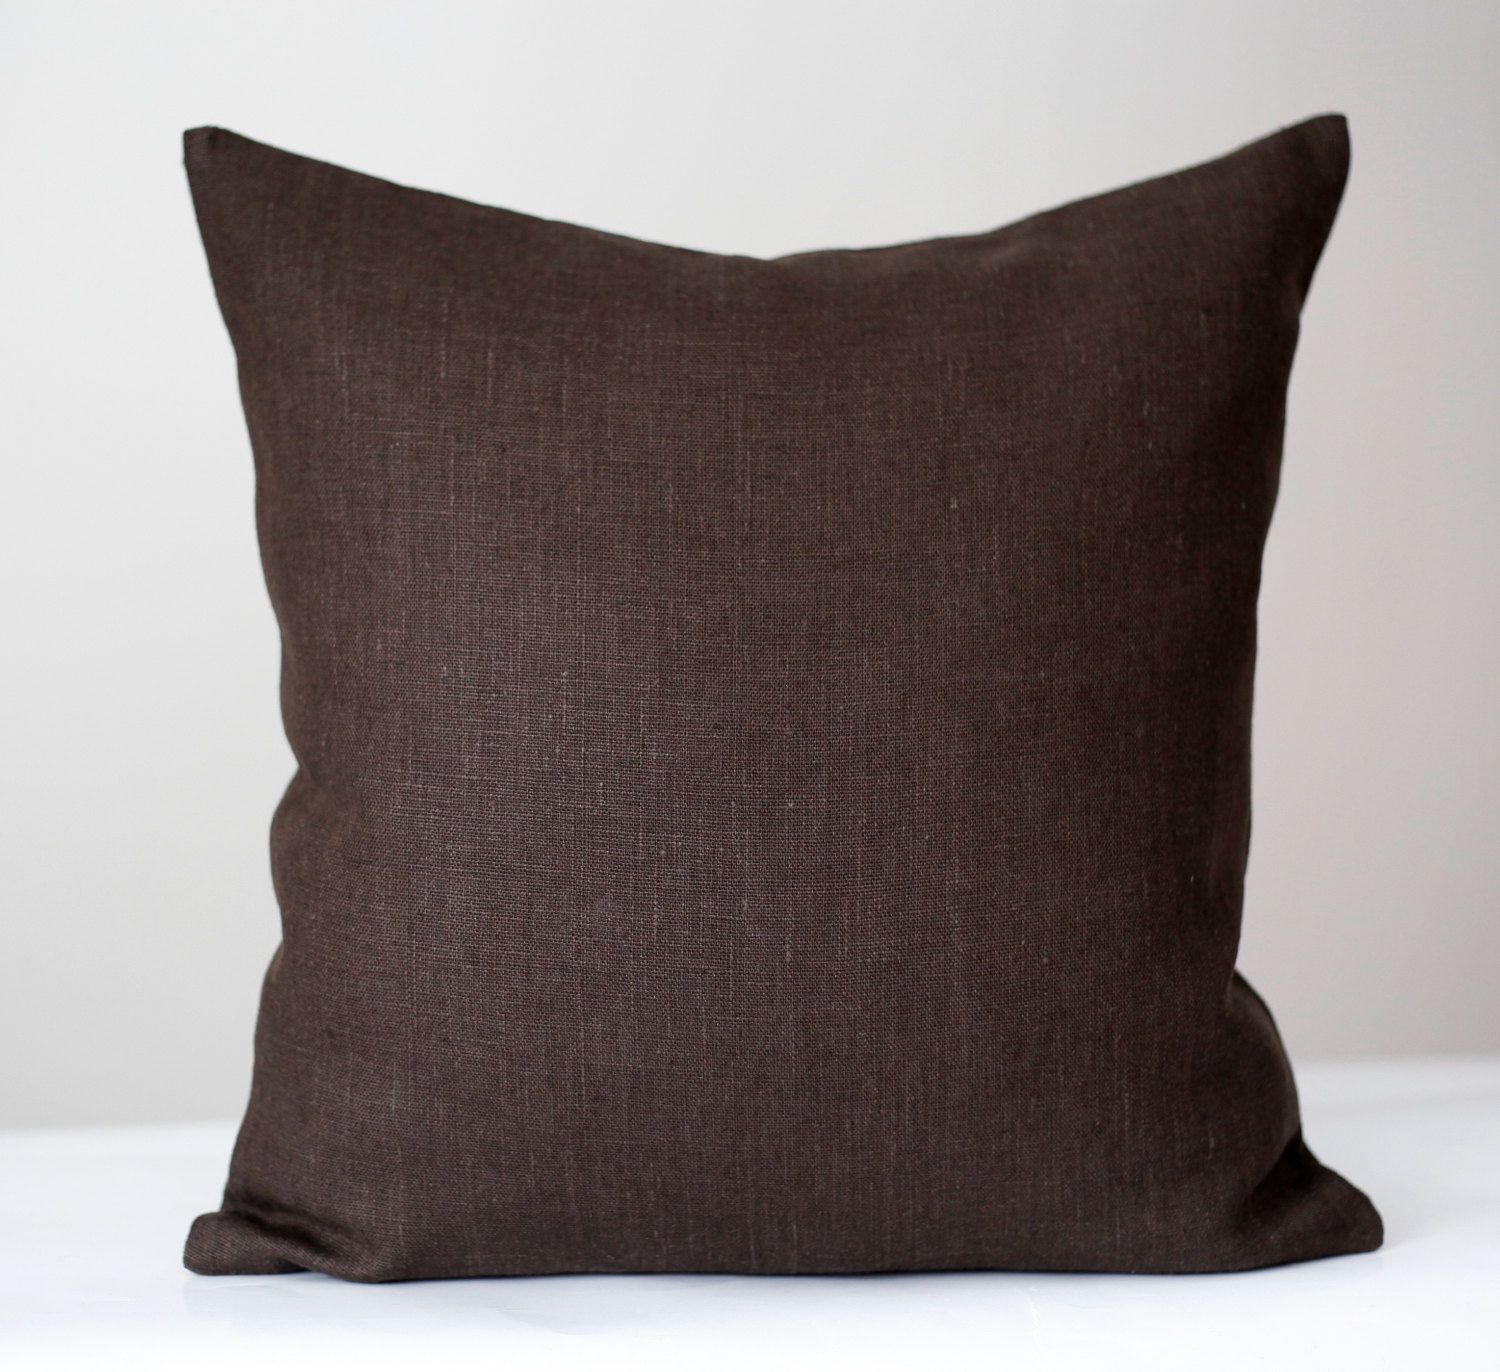 Pin On Pillows By Pillowlink